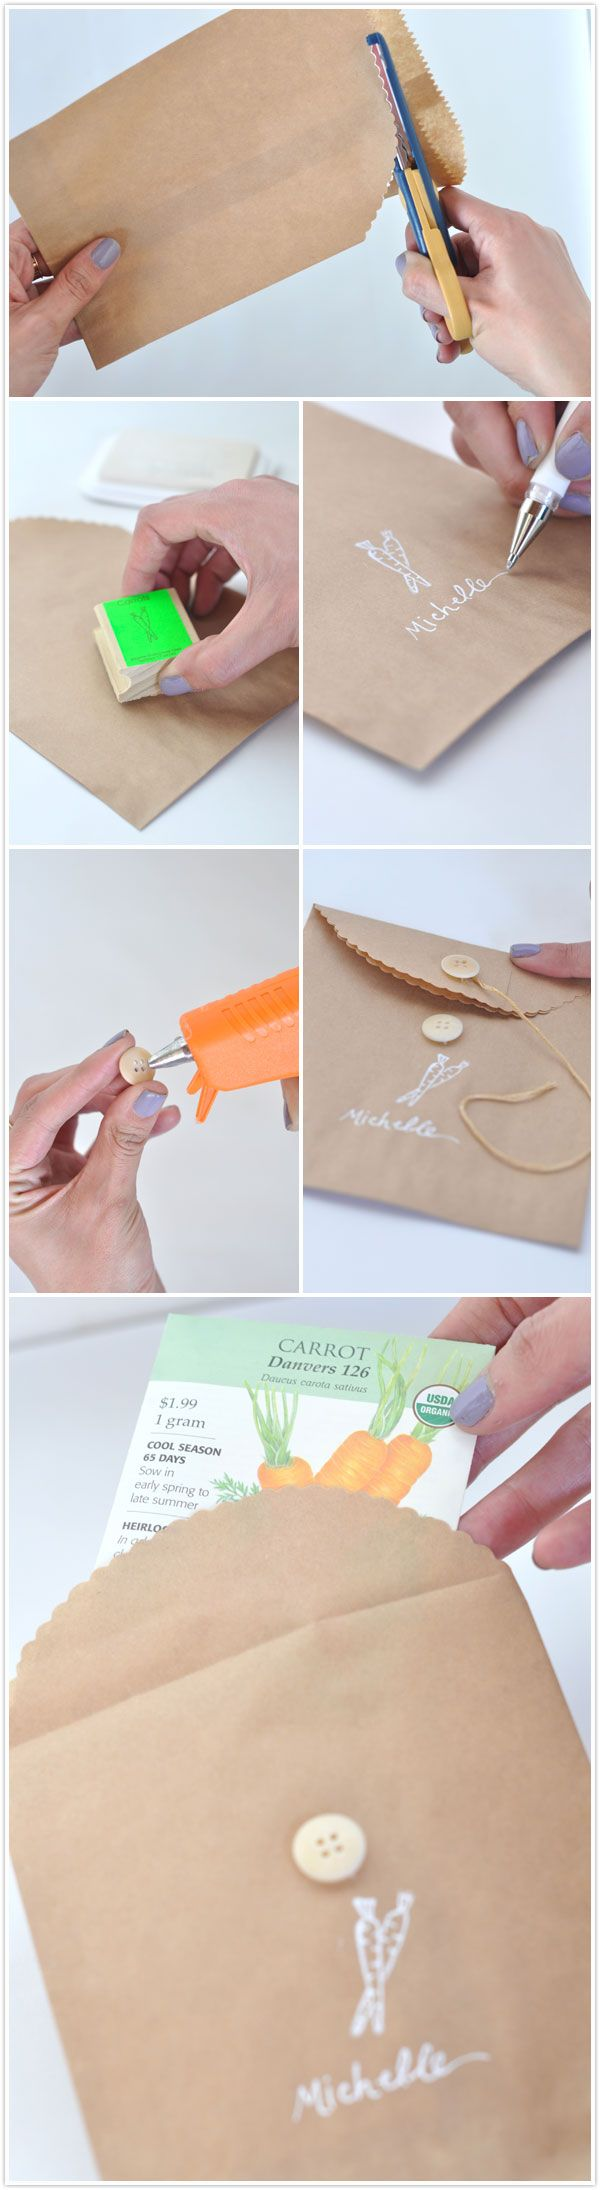 DIY button packaging